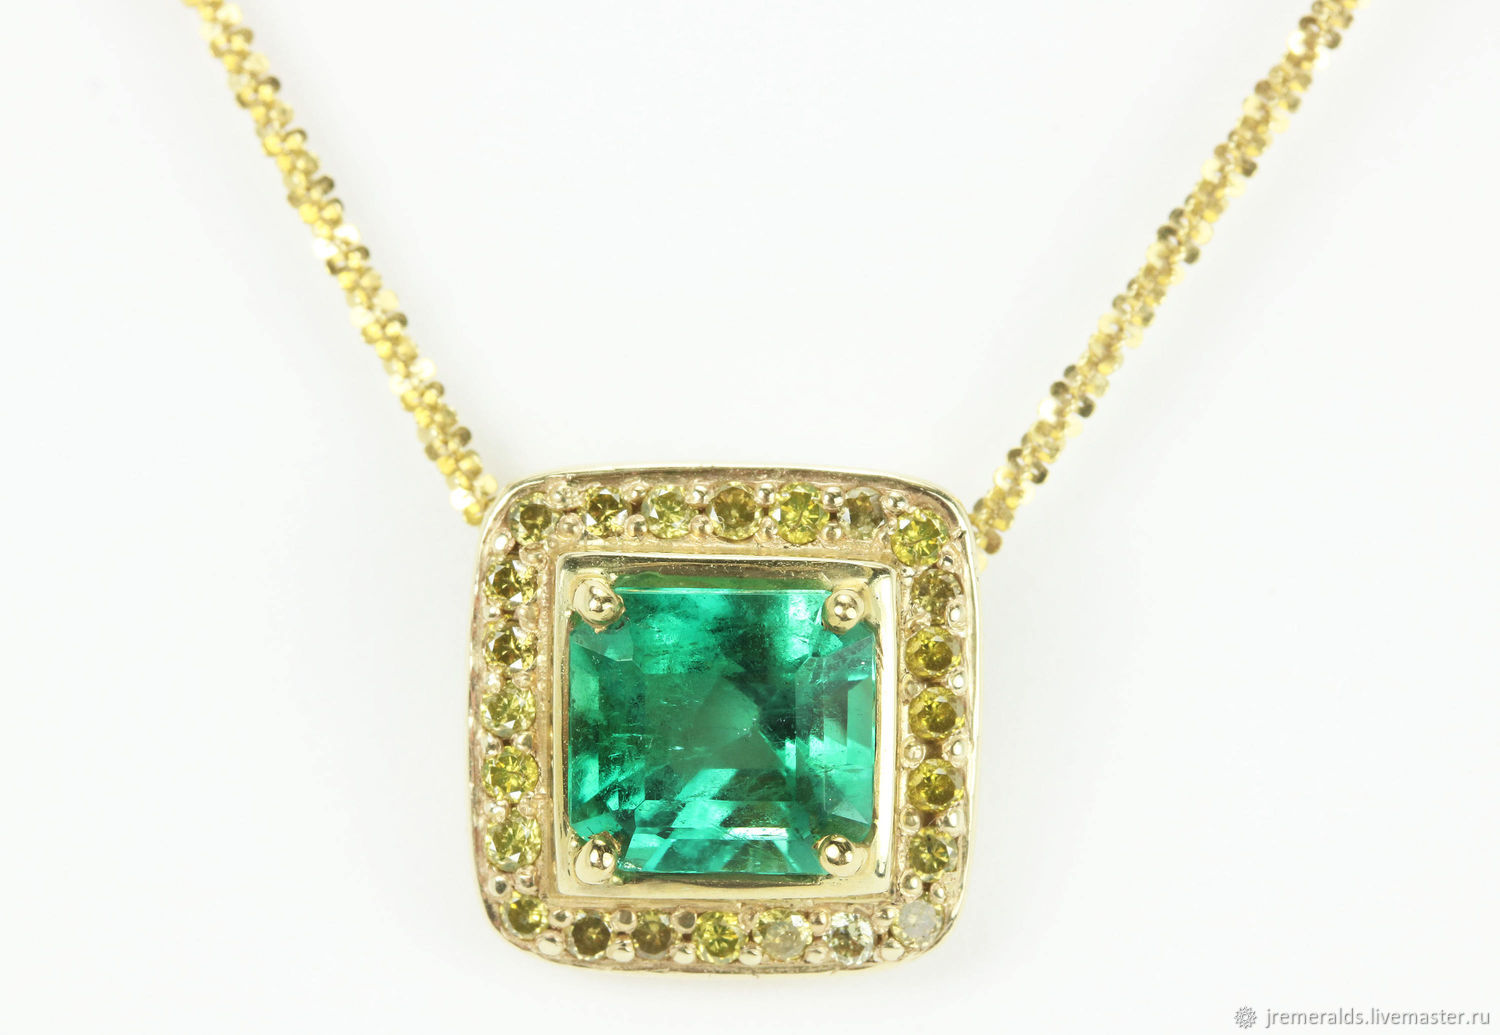 gemstones shop with amal muzo crop subsampling emeralds eight scale trapiche winner selim necklace false emerald upscale mouzannar rare and the product bib transparency over colored